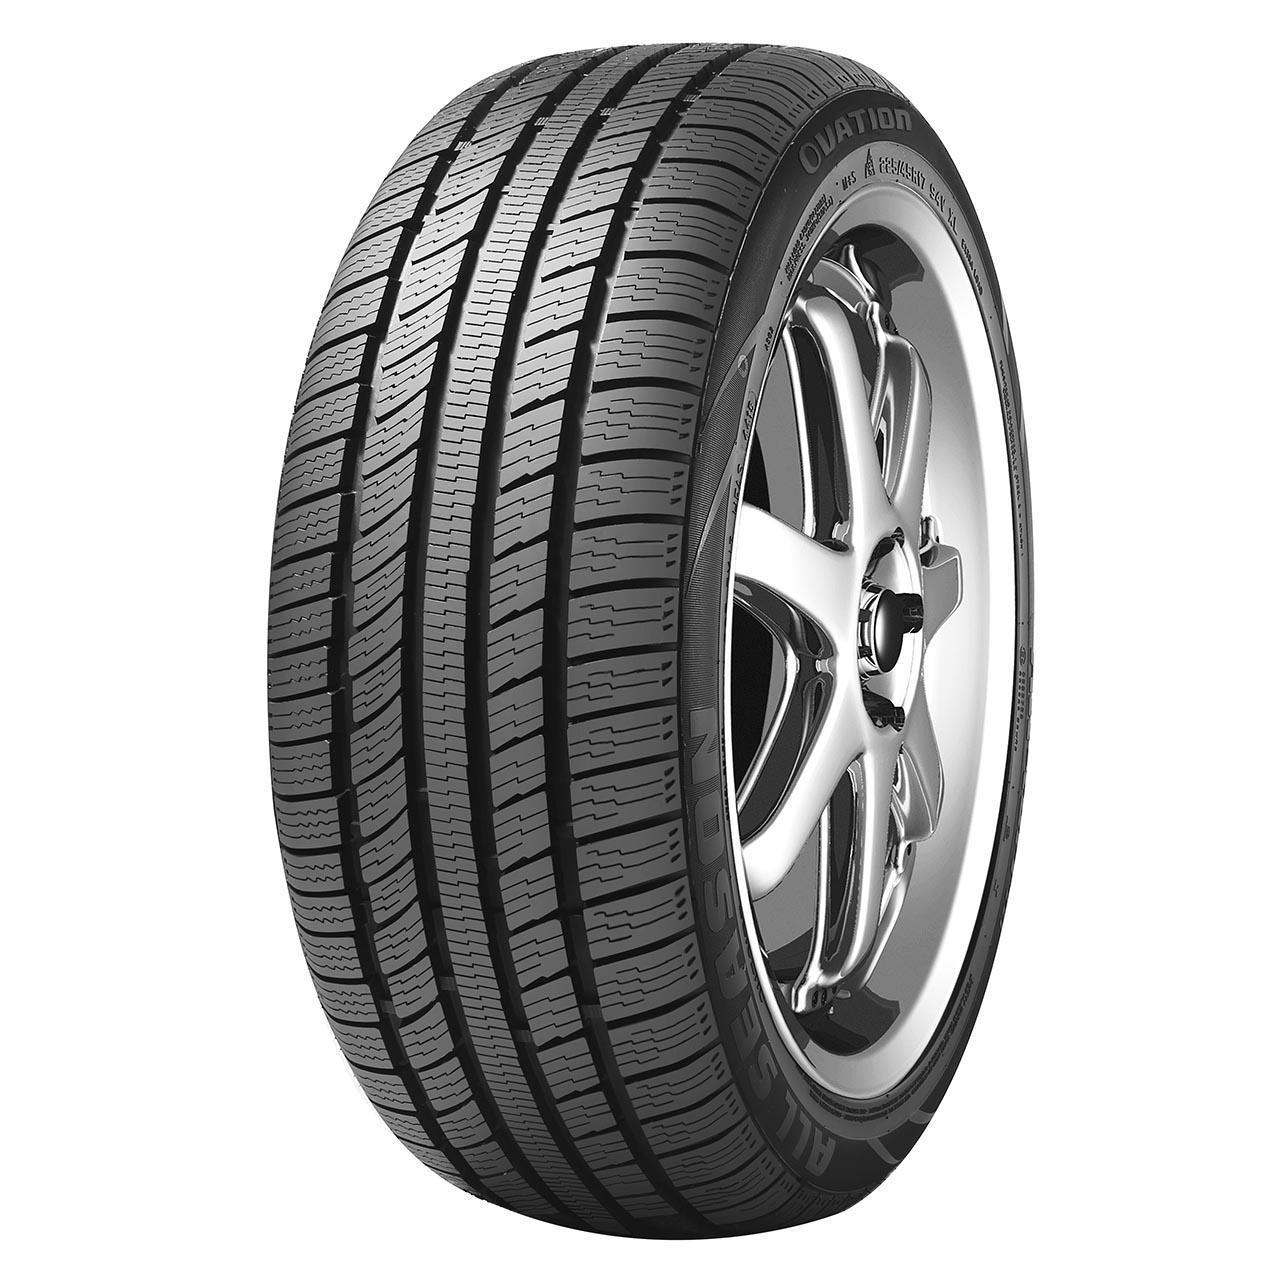 OVATION VI-782AS 205/55 R17 95V XL M+S